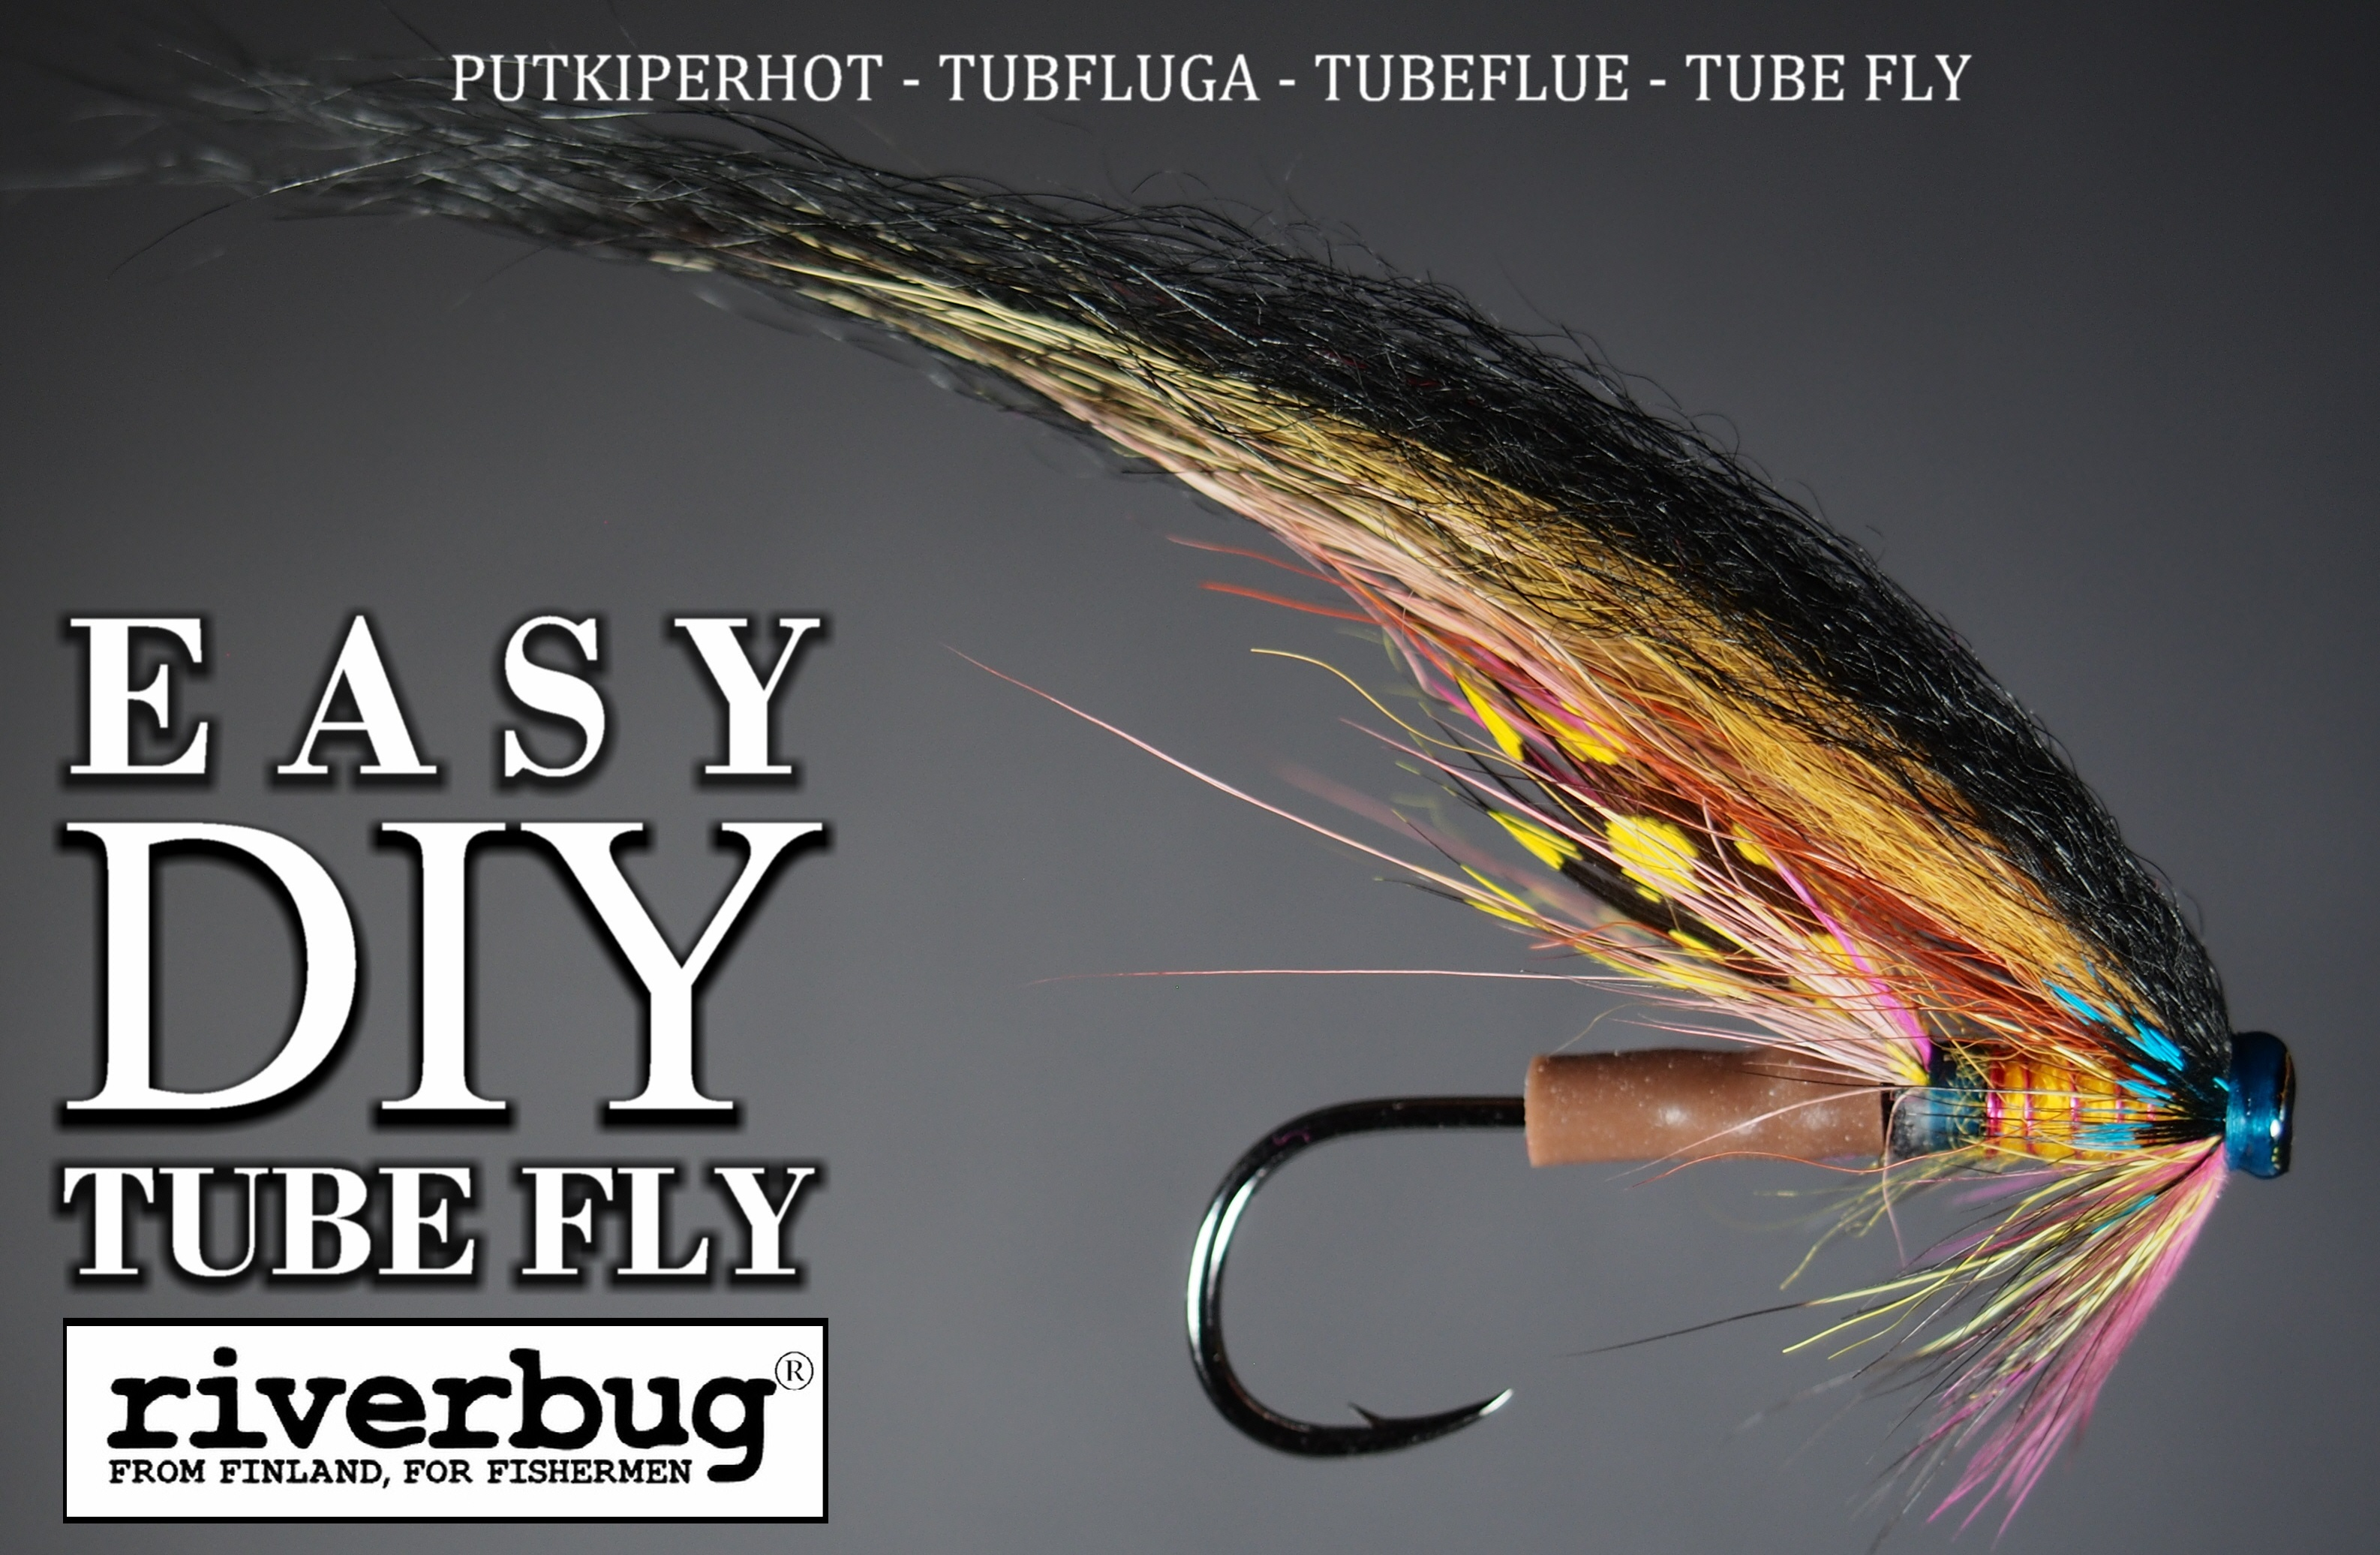 PHATAKORVA - PUTKIPERHOT - RIVERBUG - TUBEFLUE - TUBFLUGA easy DIY tube fly method. #tubefly #putkiperhot #phatakorva #phatagorva #DIY #flytying #tubfluga #tubeflue #tubefluer #lohiperhot